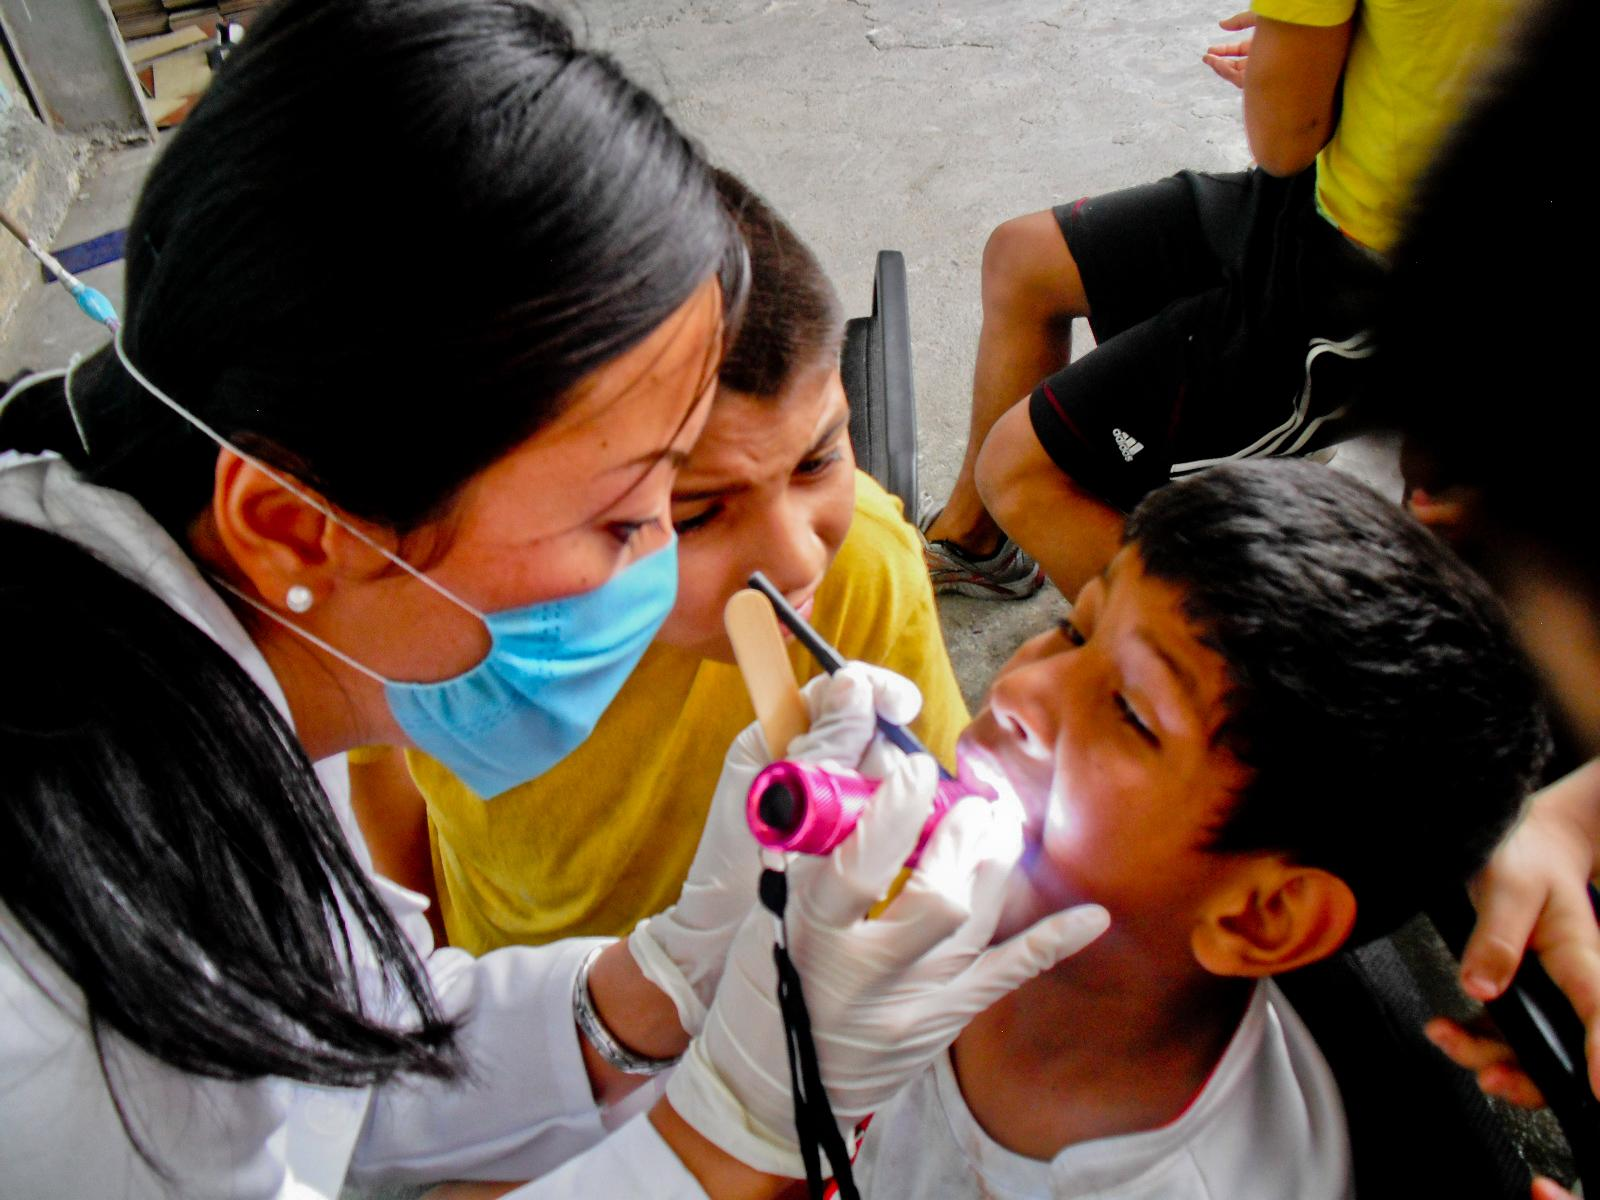 A Projects Abroad intern examines a young local boy during a medical outreach on her Dentistry internship in Mexico.